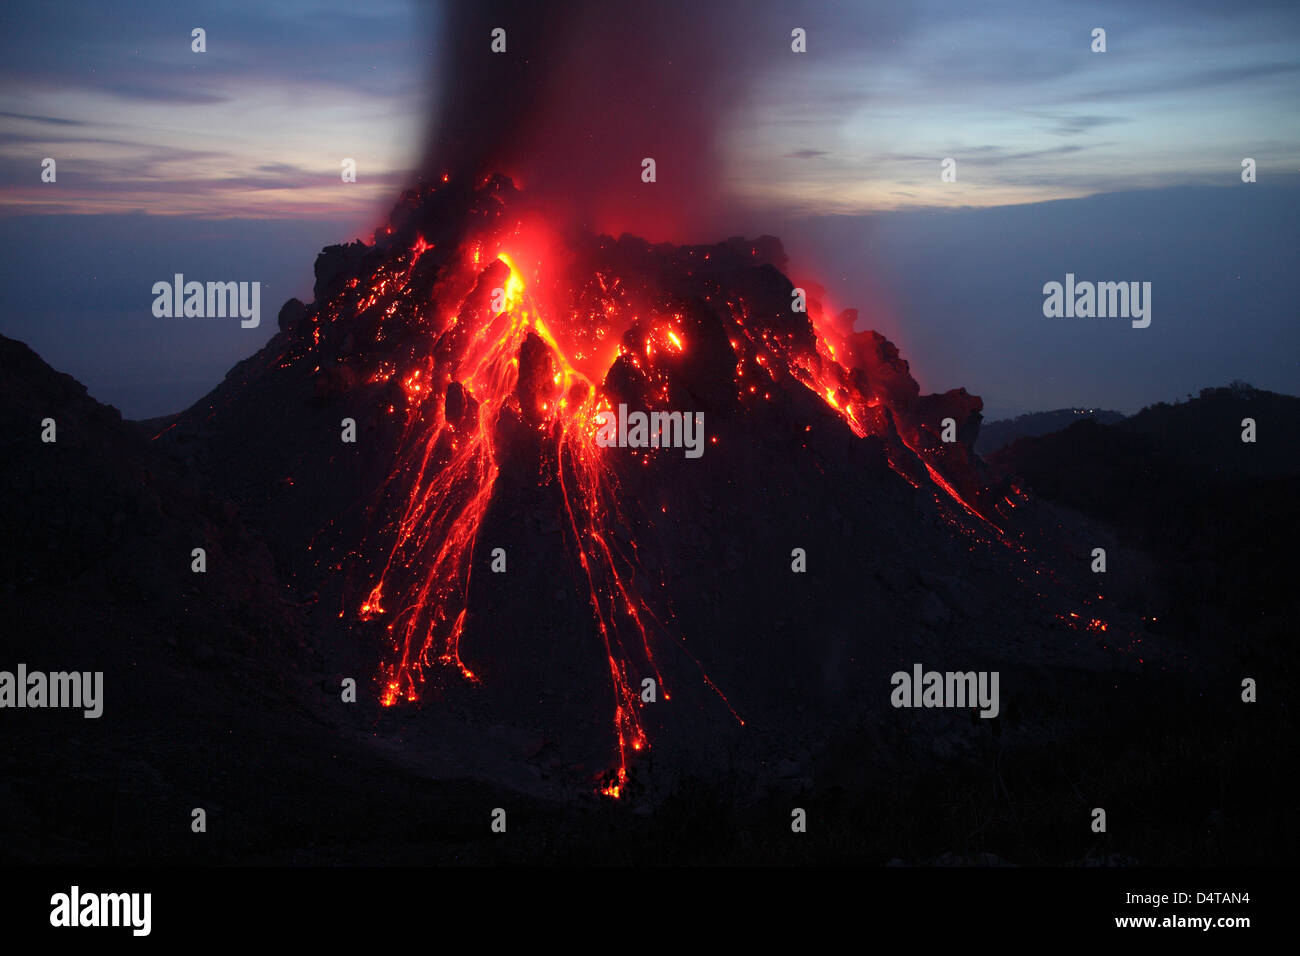 November 30, 2012 - Glowing Rerombola lava dome of Paluweh (or Rokatenda) volcano during eruption in 2012, Flores, - Stock Image